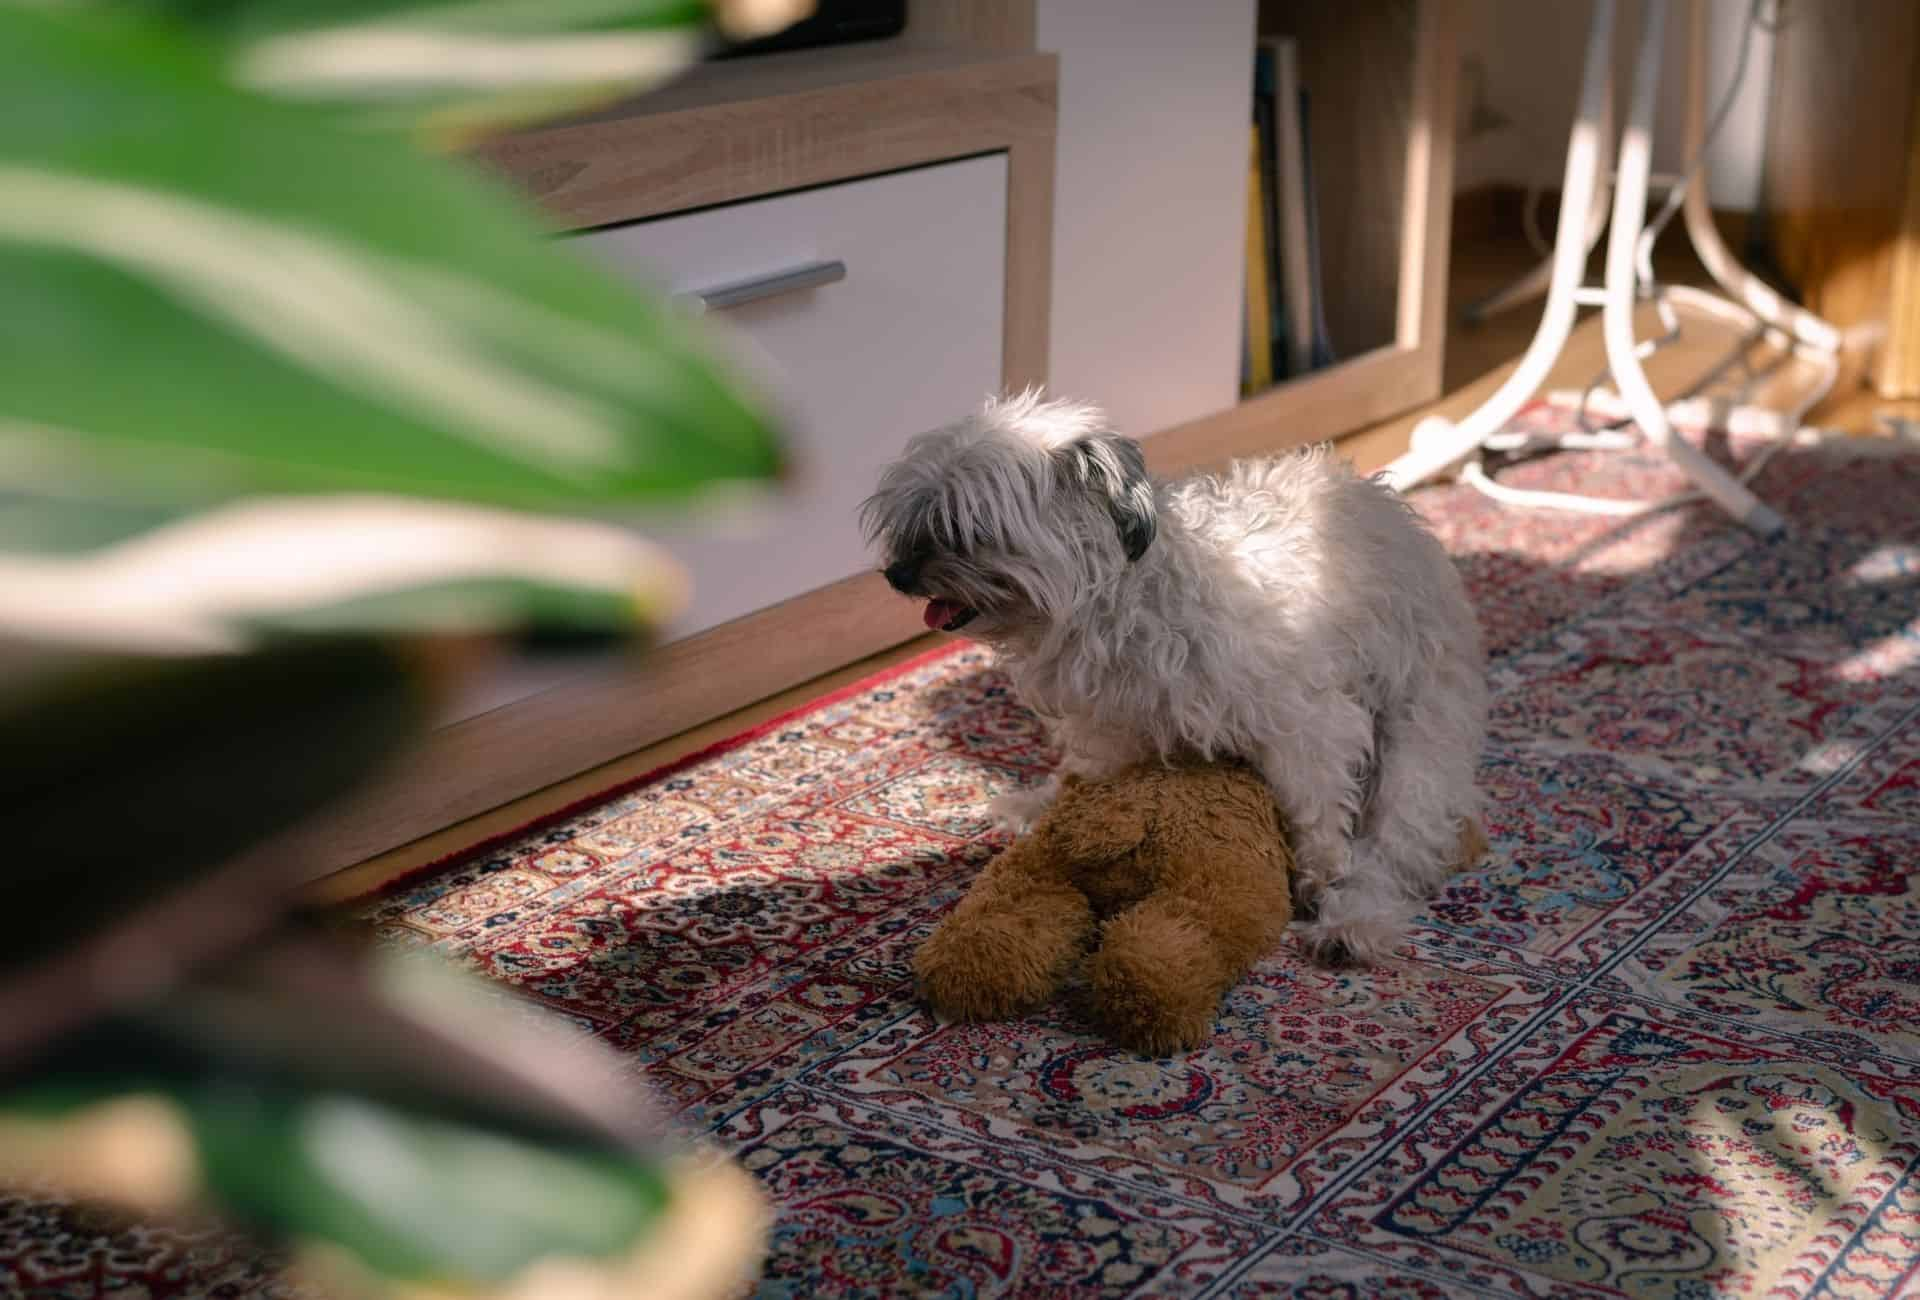 A small female dog is humping a stuffed animal toy inside the house.